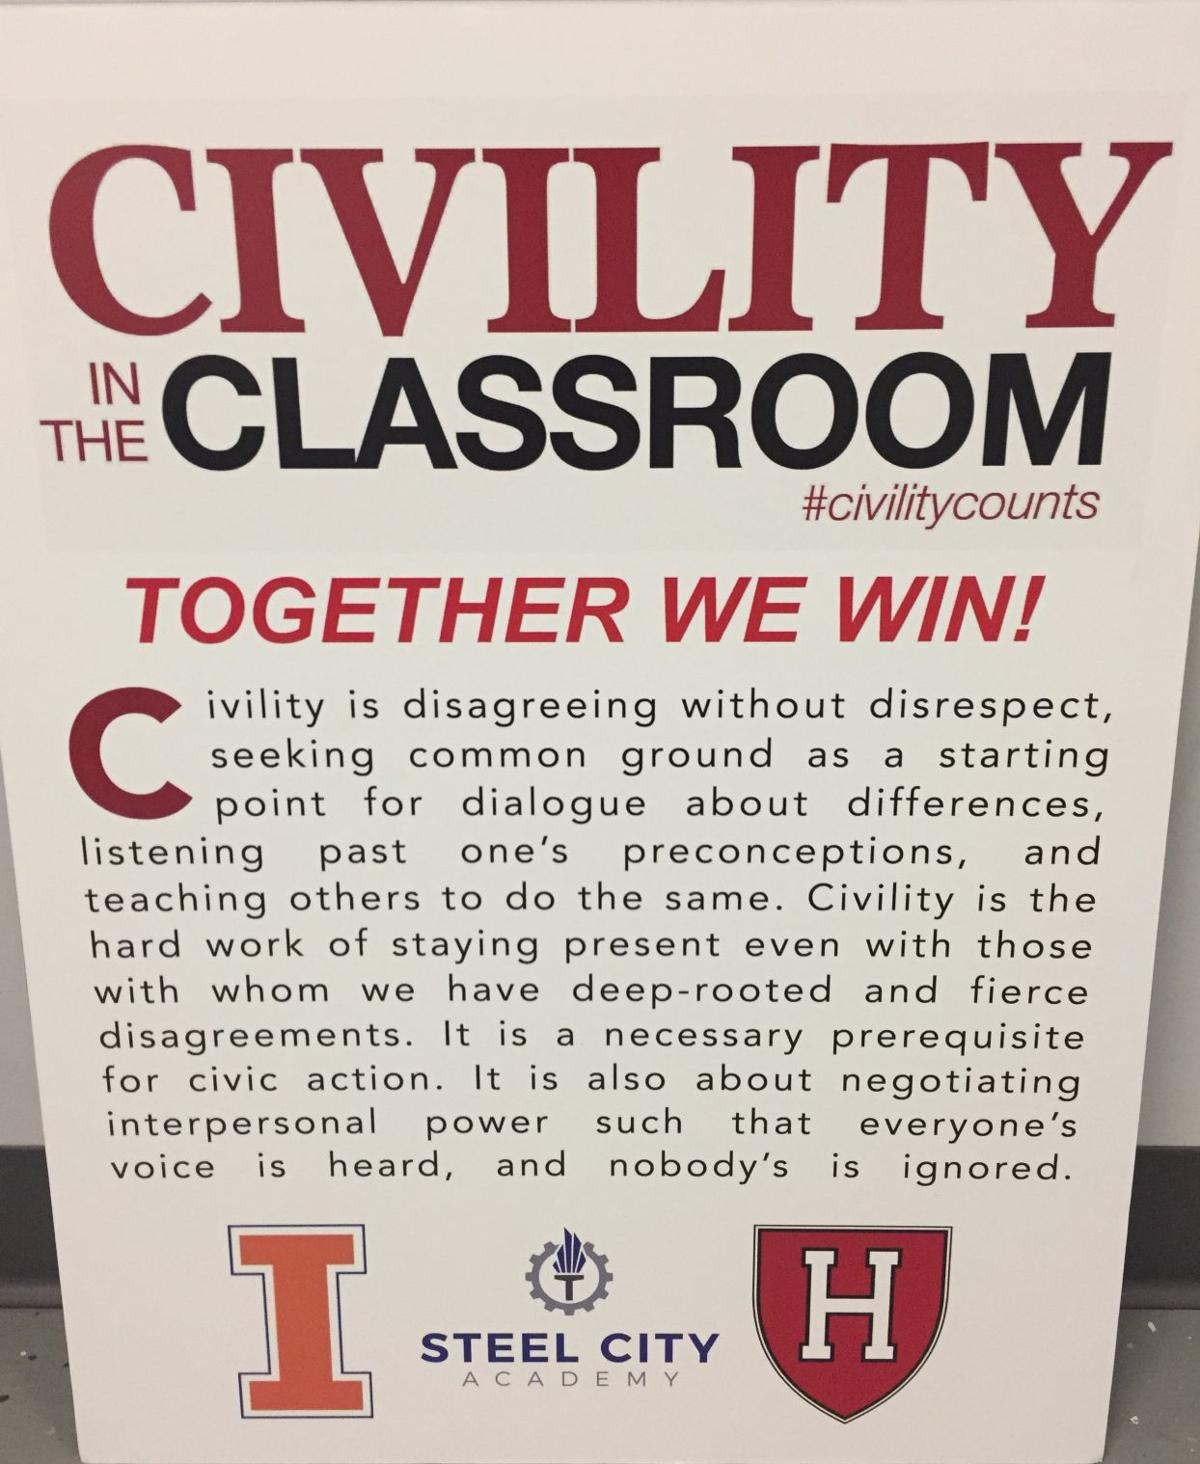 Civility in the Classroom makes its triumphant return next week